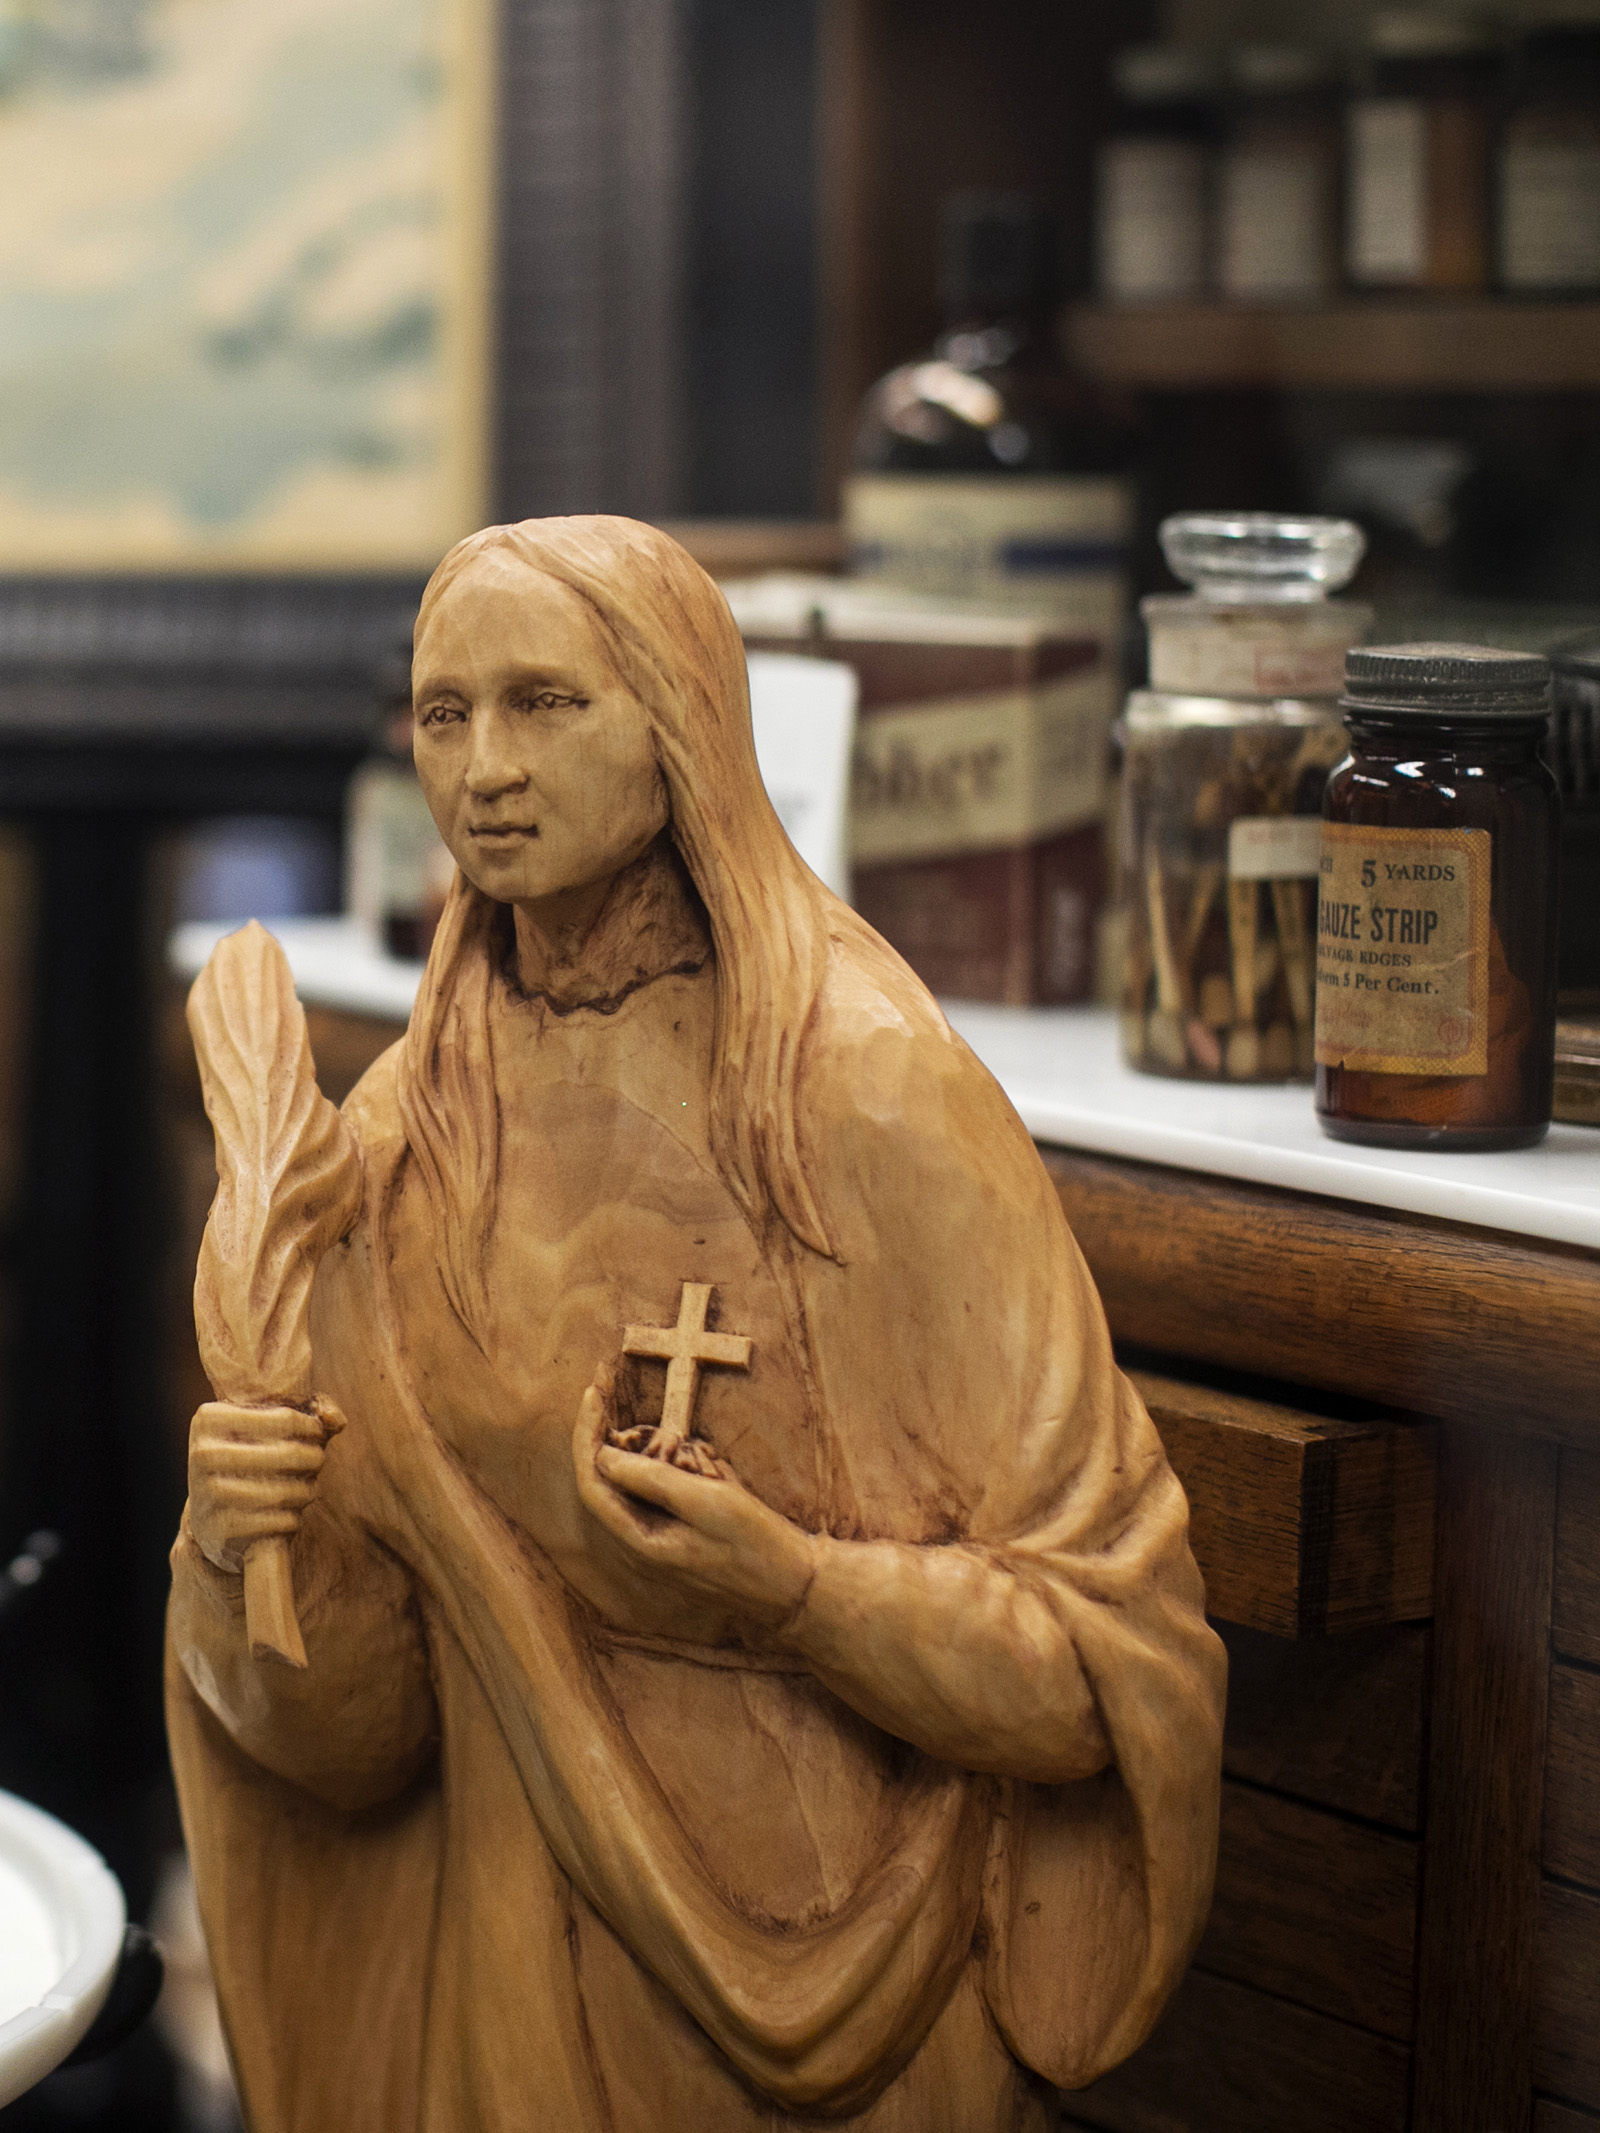 Wood carving of the patron saint of dentistry